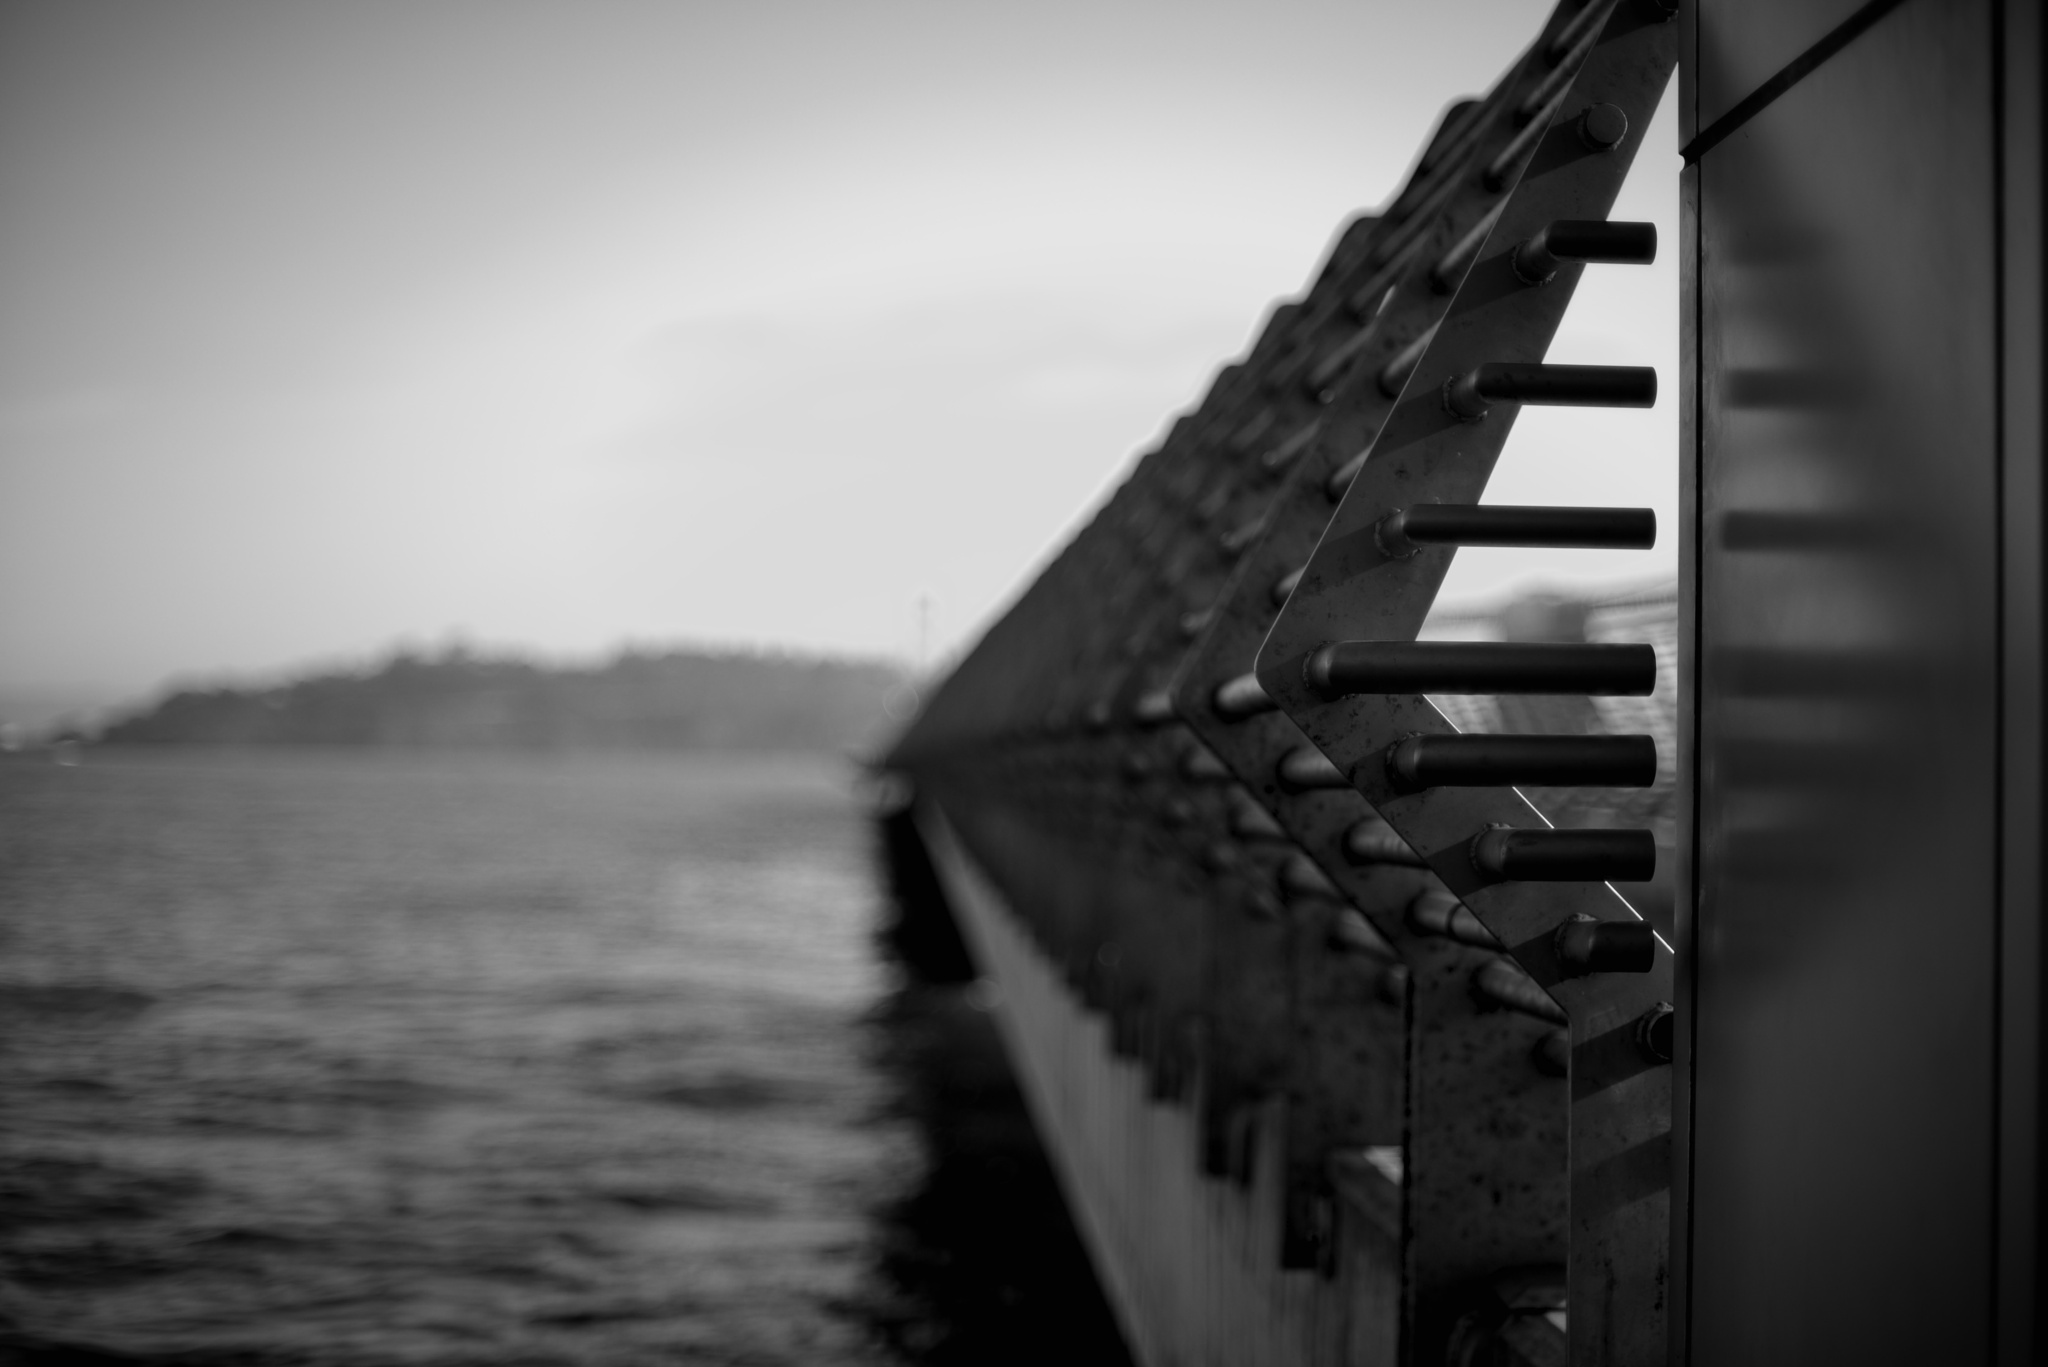 Endless Pier by aquilesiam